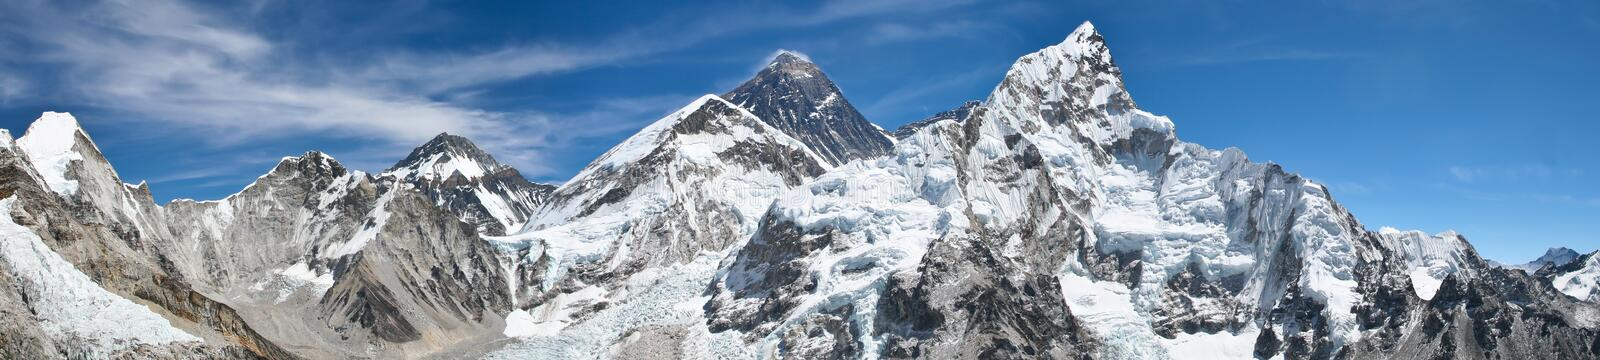 Zet Everest panoramamening op stock afbeeldingen